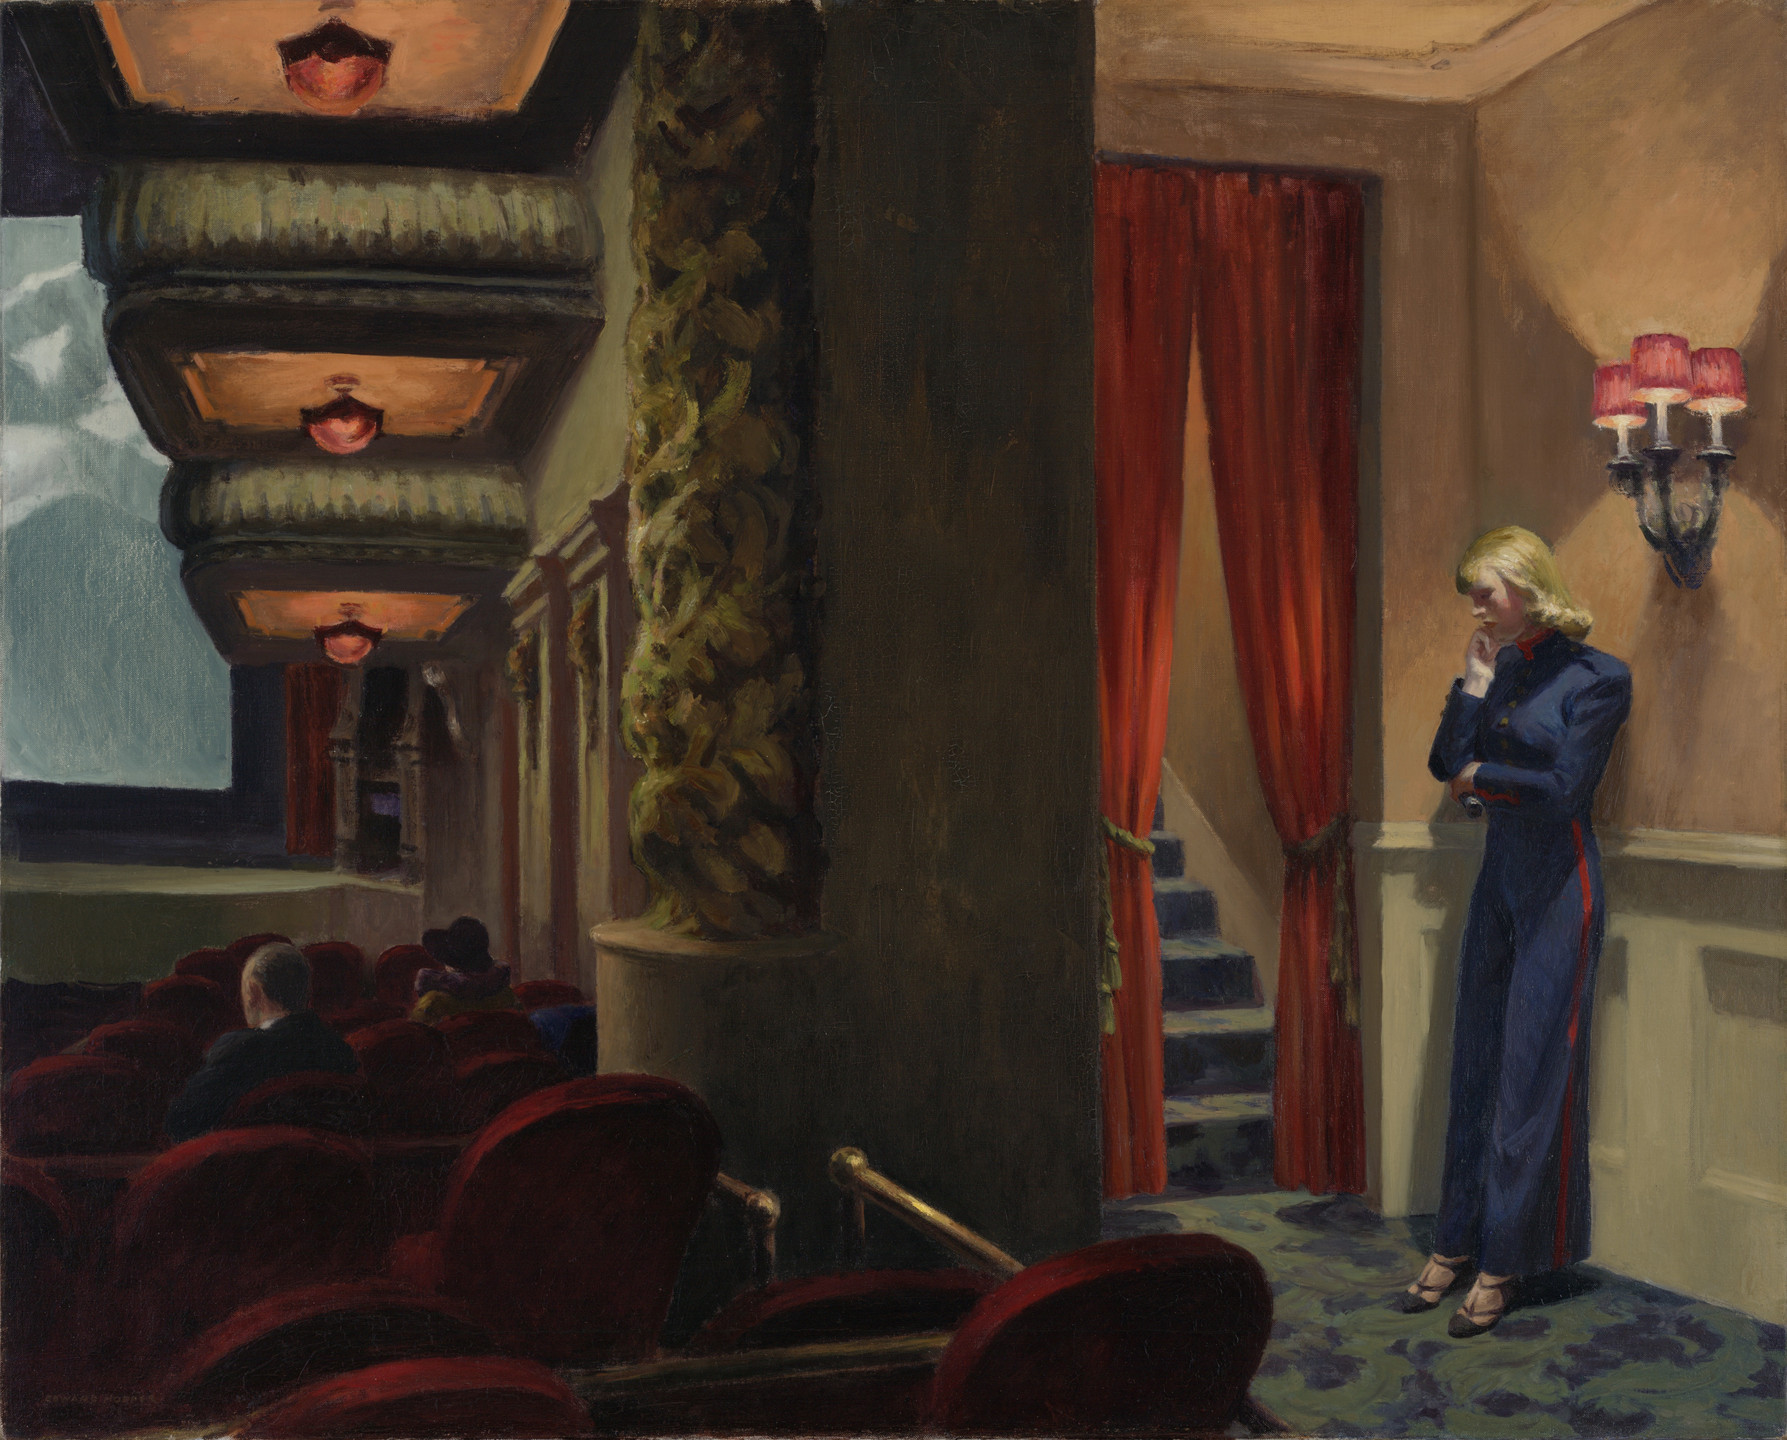 Edward Hopper. New York Movie. 1939